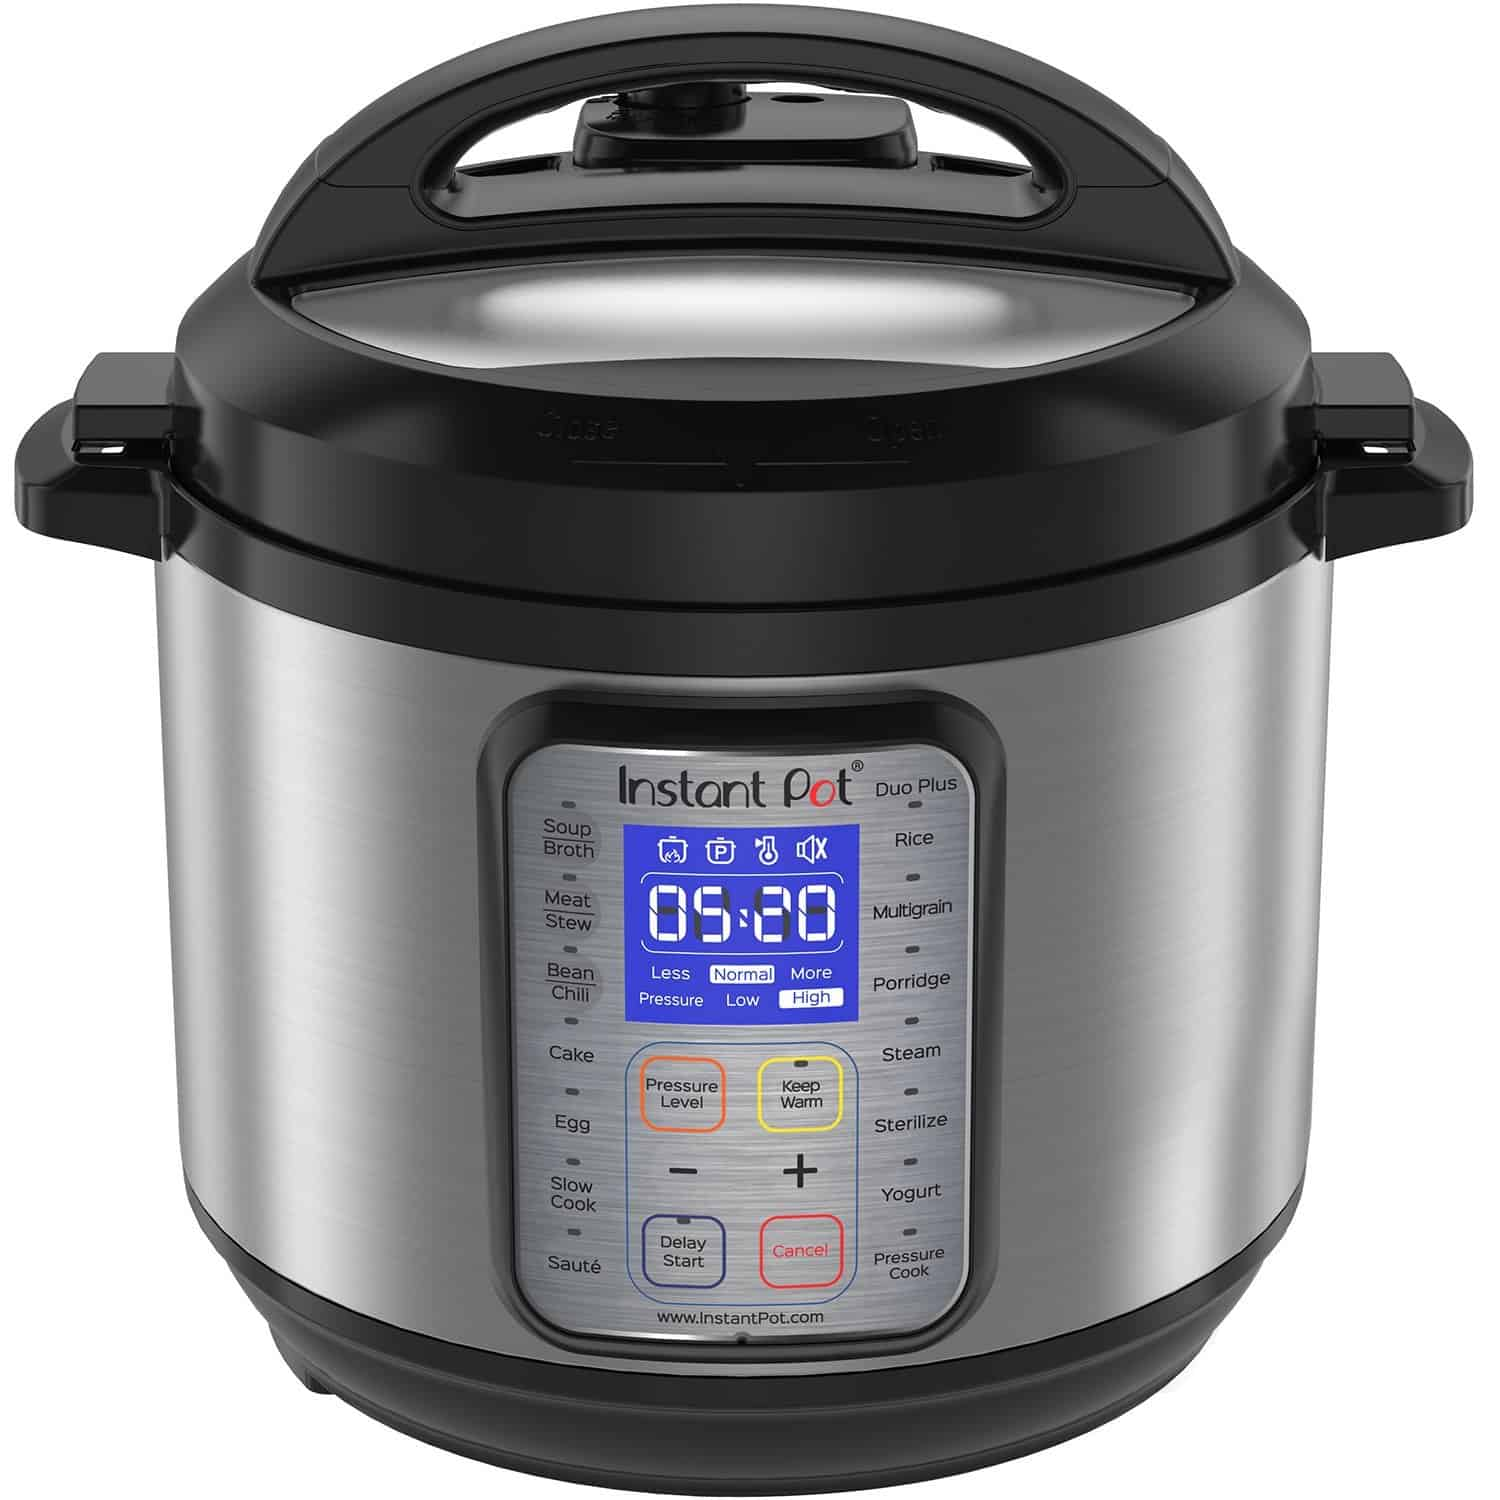 Instant Pot Pressure Cooker recipes